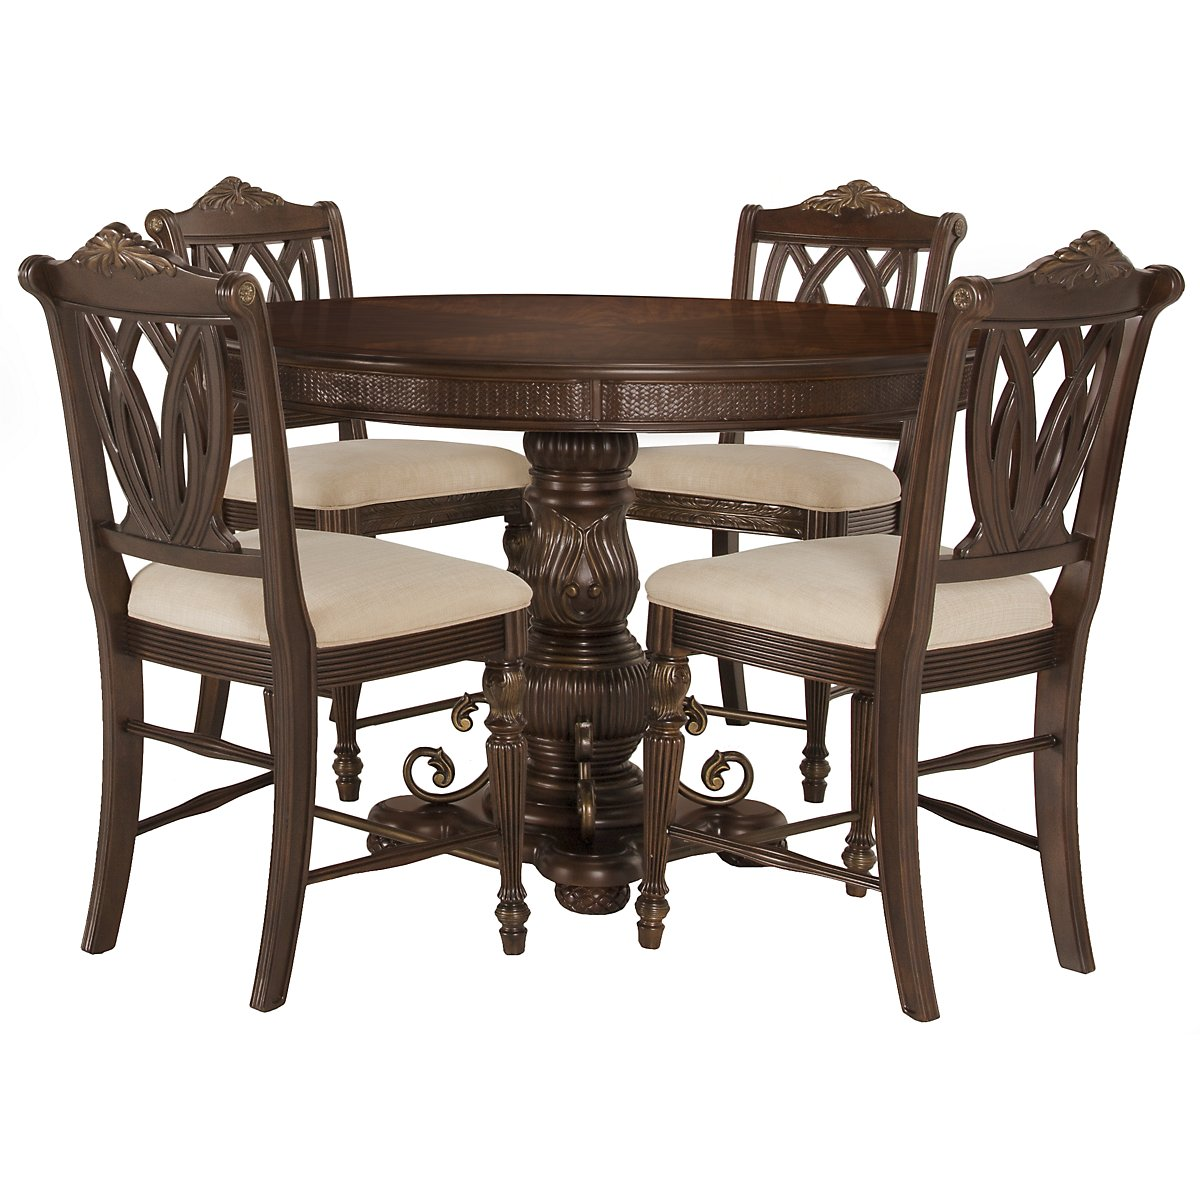 Tradewinds Dark Tone Round High Table & 4 Wood Barstools